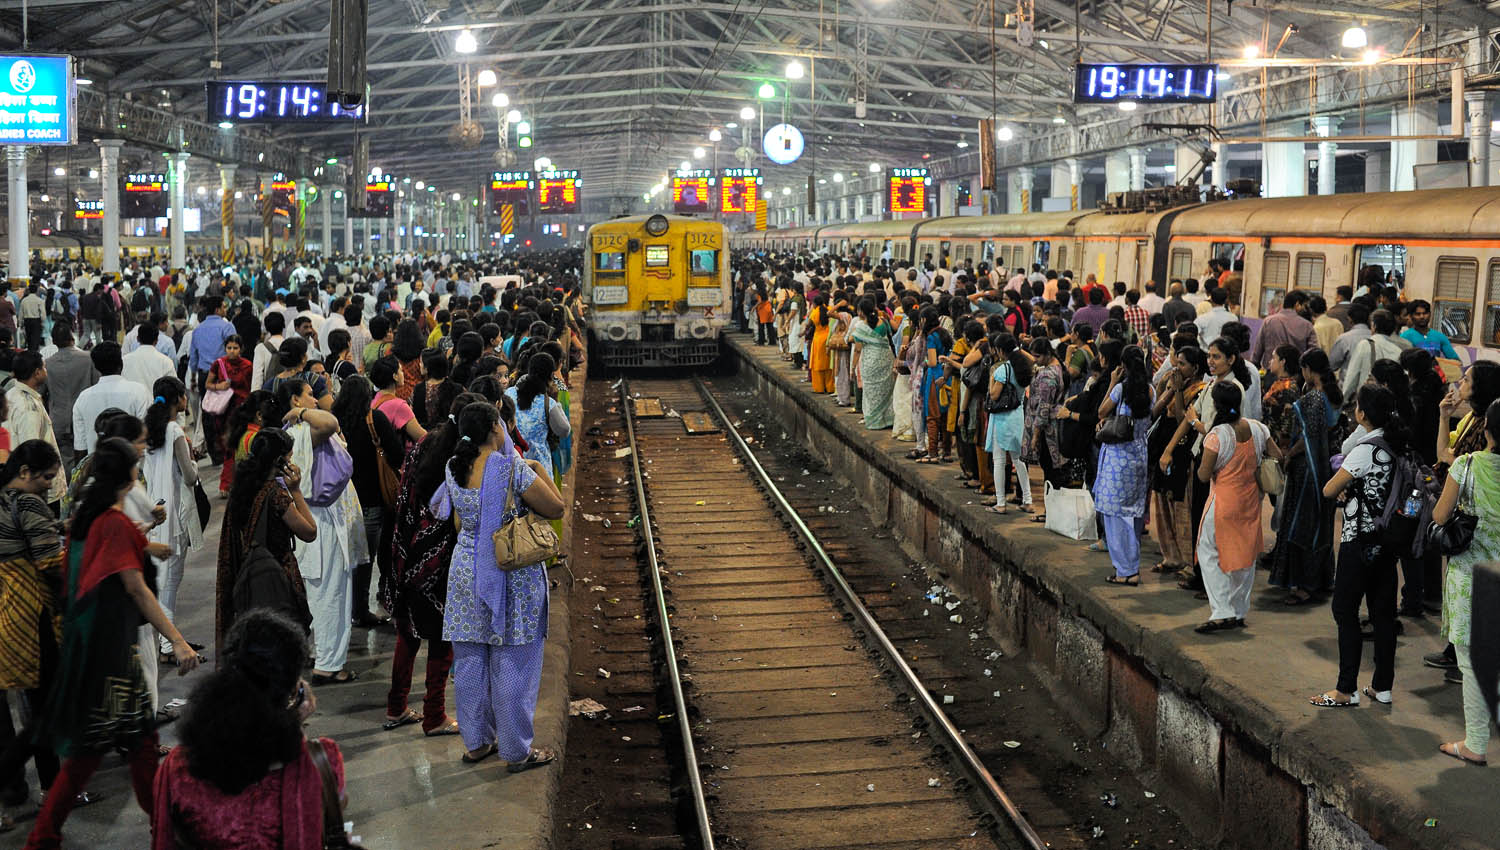 The busy platforms during rush hour. Image:  ©    Padmanaba01